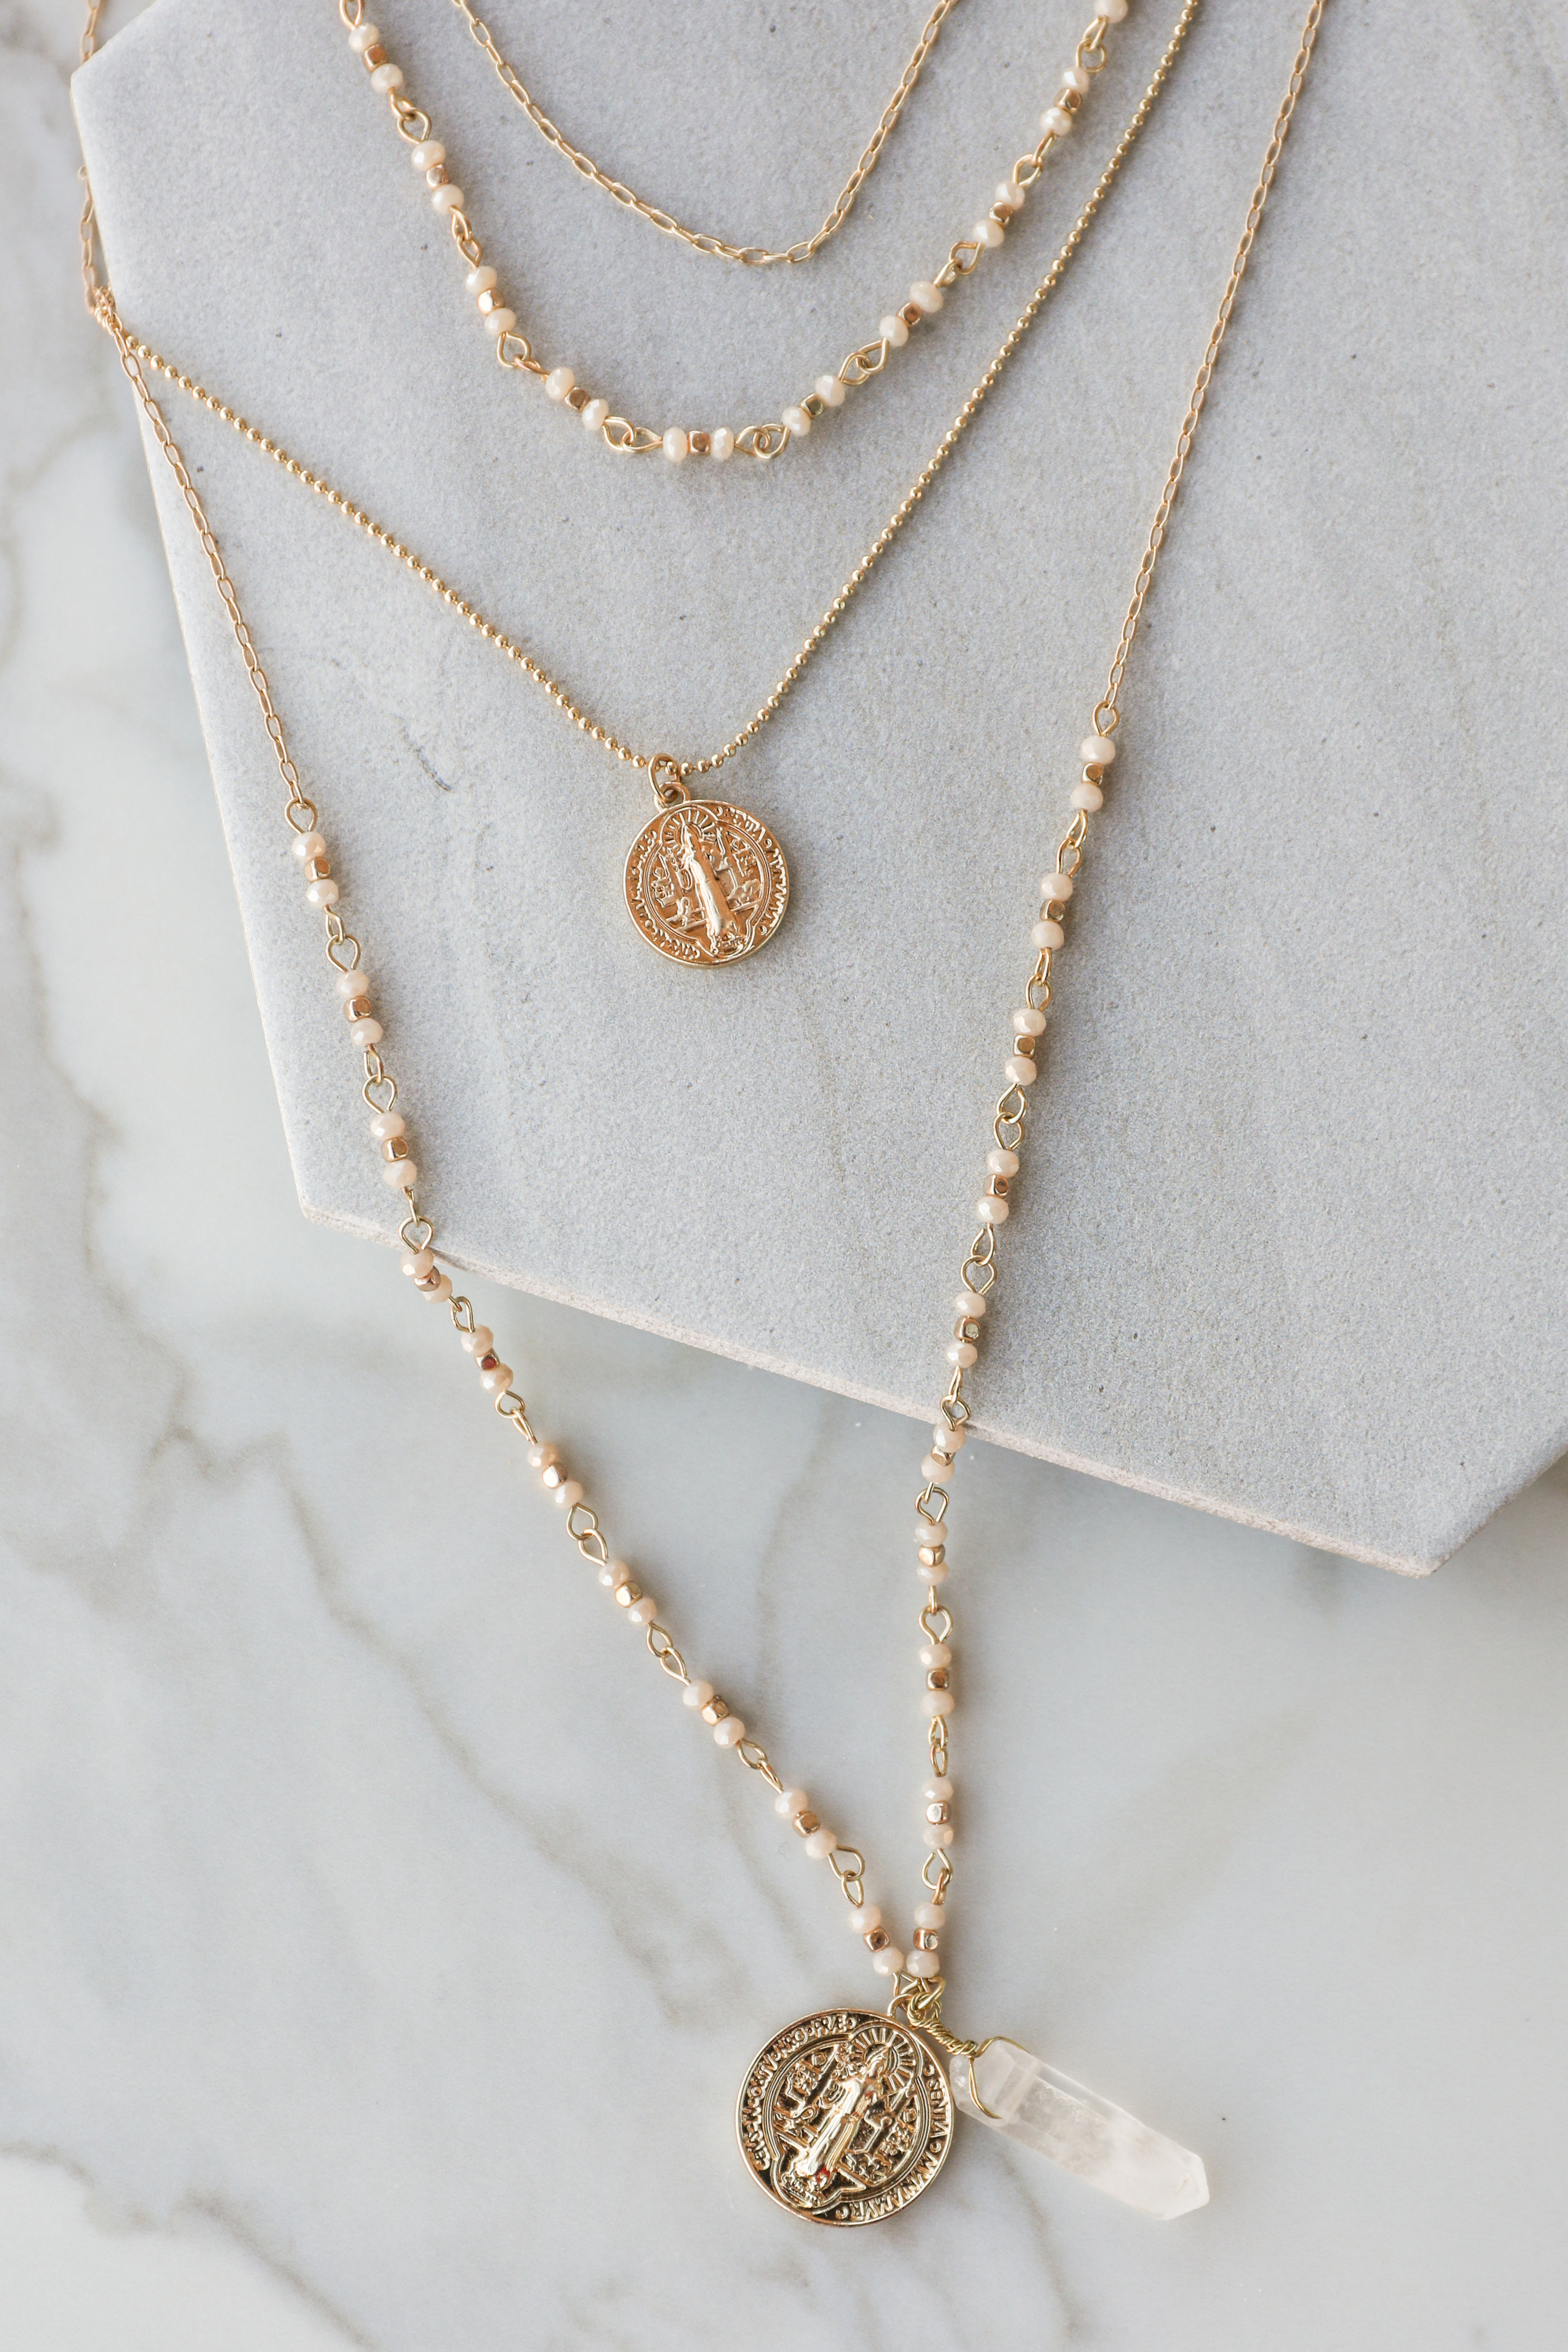 Gold Layered Necklace with Stone and Coin Pendants